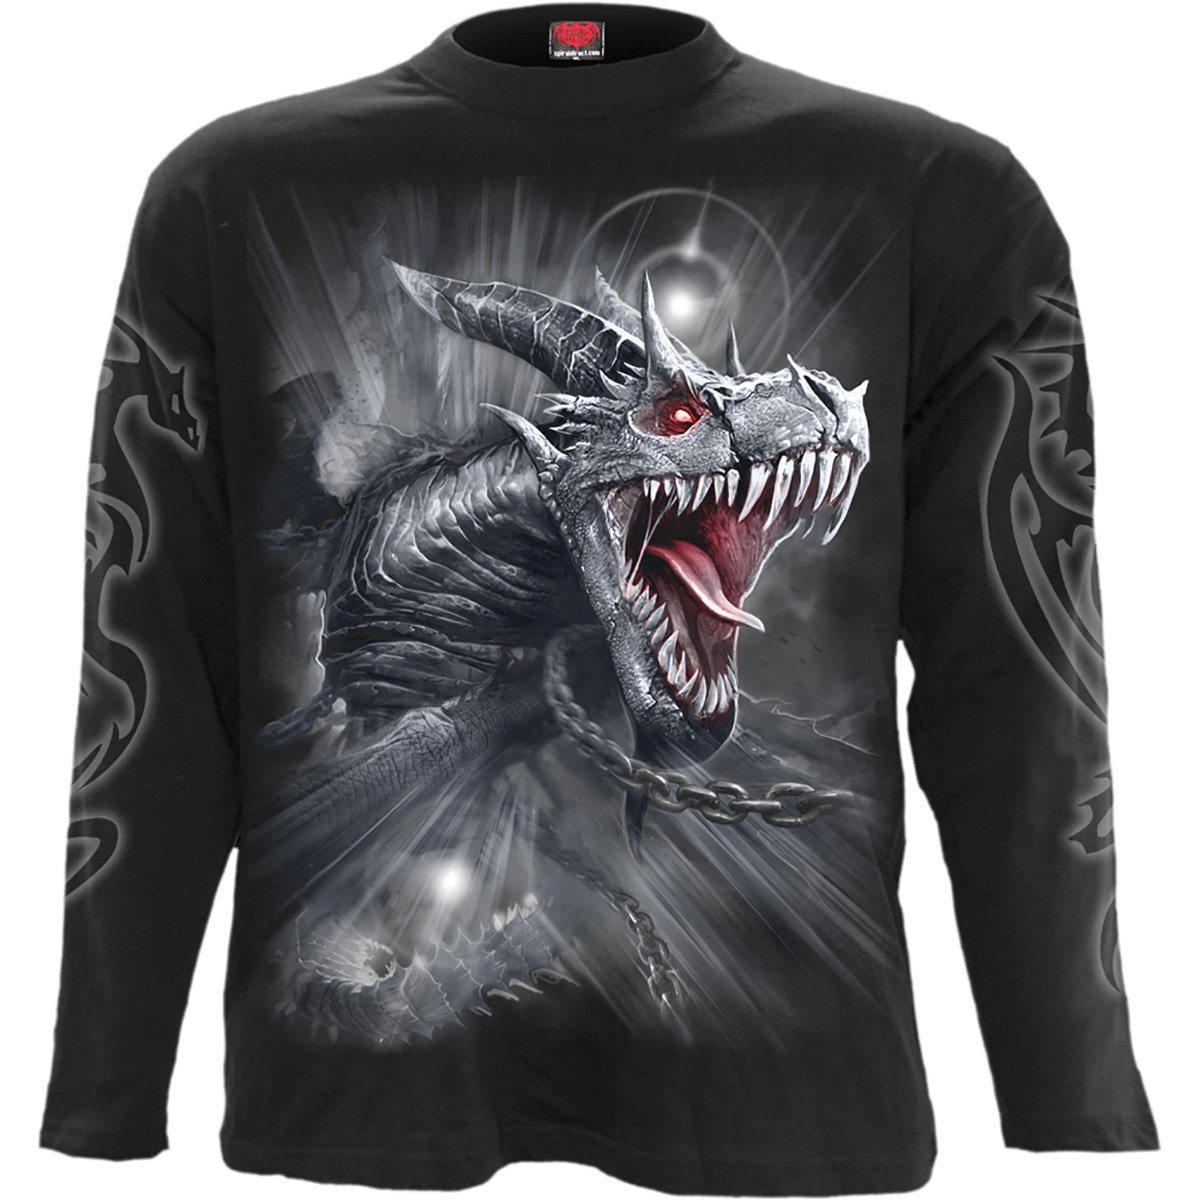 DRAGON'S CRY - Unshackled Longsleeve Shirt - Rebels Depot